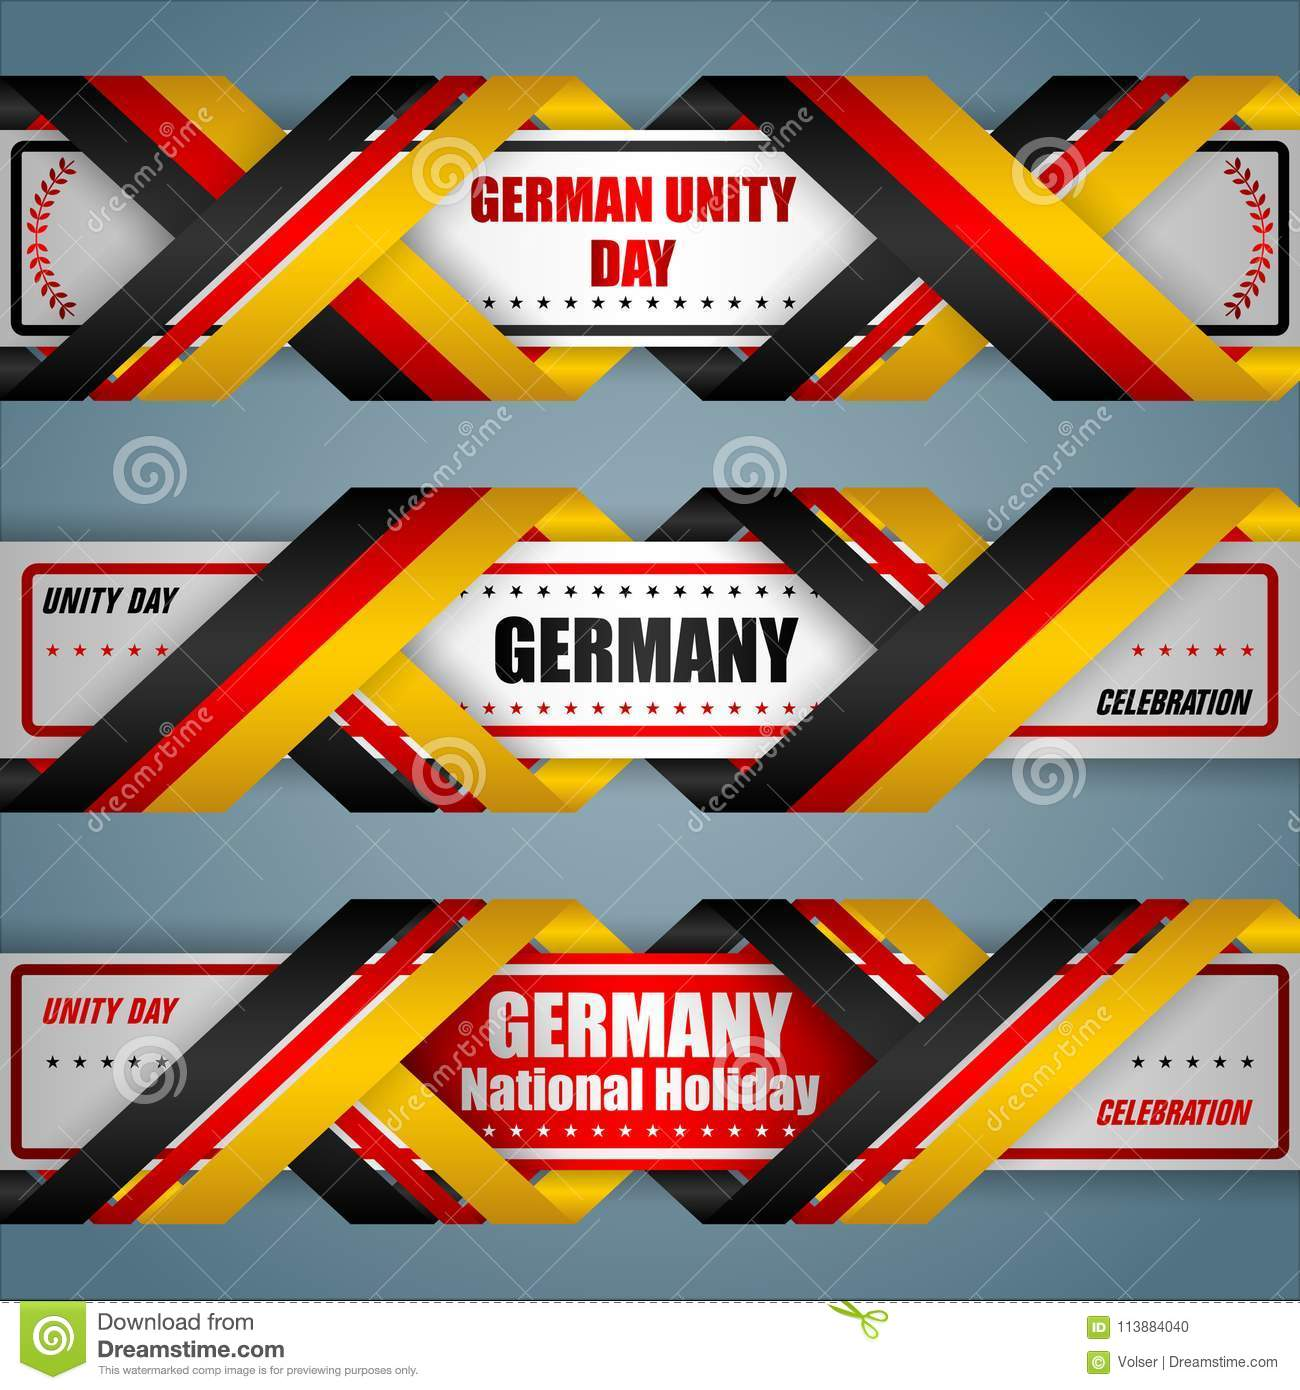 German Unity Day, Web Banners Stock Vector - Illustration of